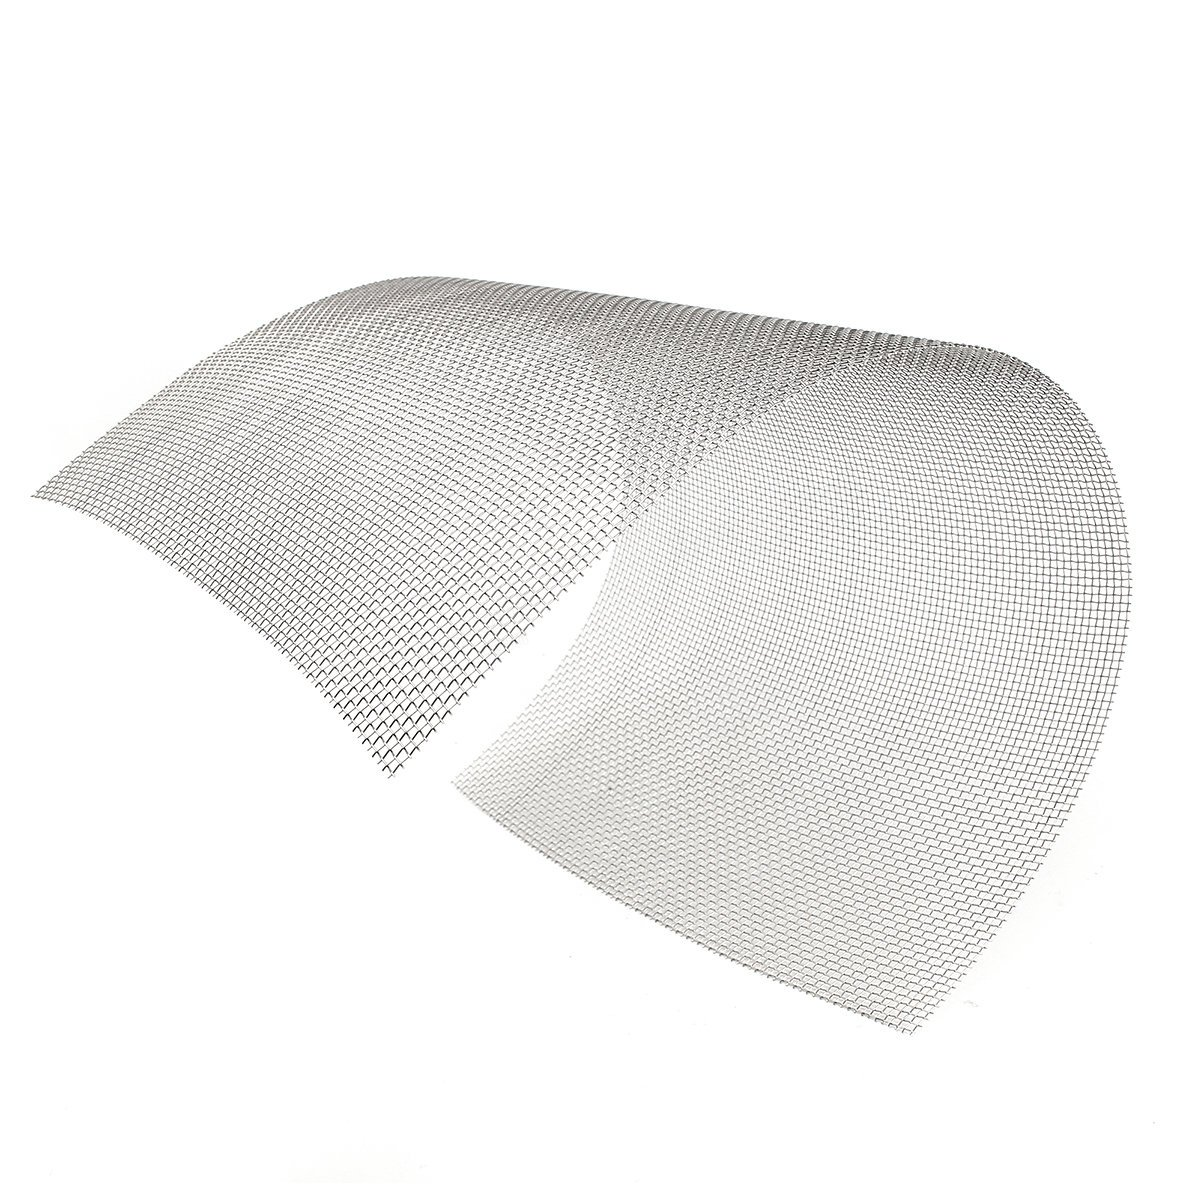 (Set of 1) - 12''x24'' 8 Mesh Woven Wire 304 Stainless Steel Filtration Grill Sheet Filter - 30x60cm